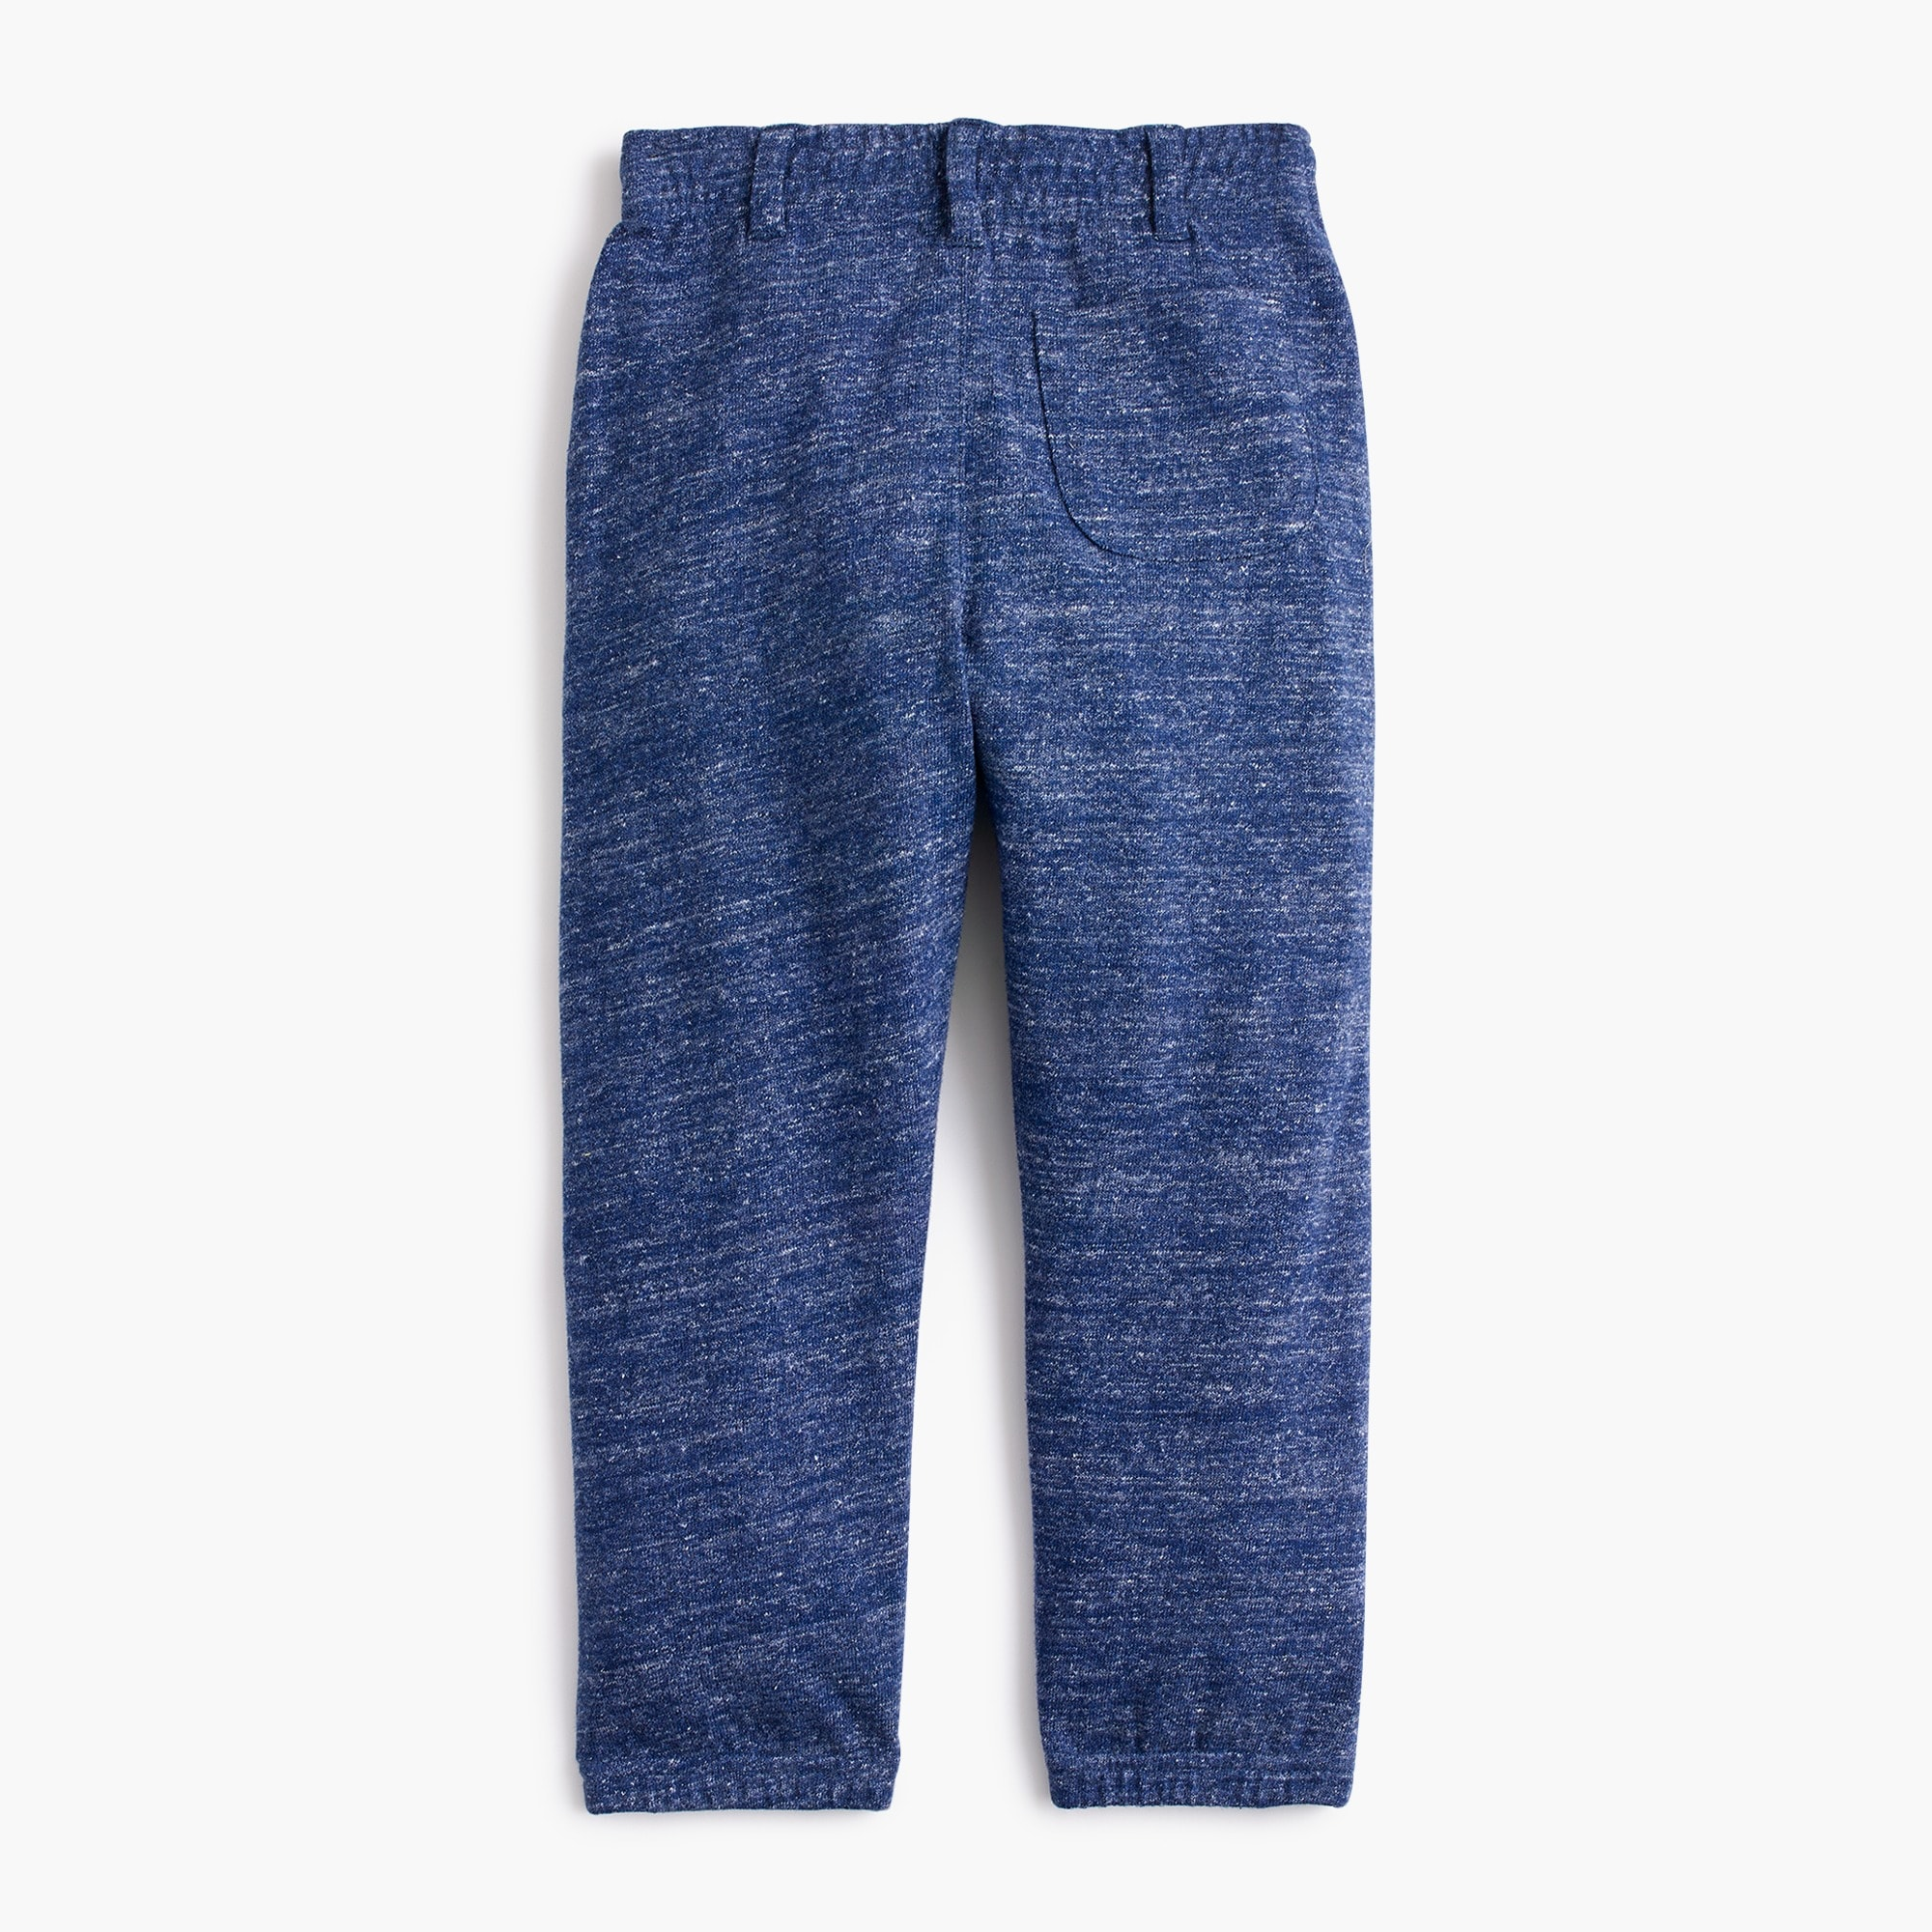 Boys' trouser sweatpant